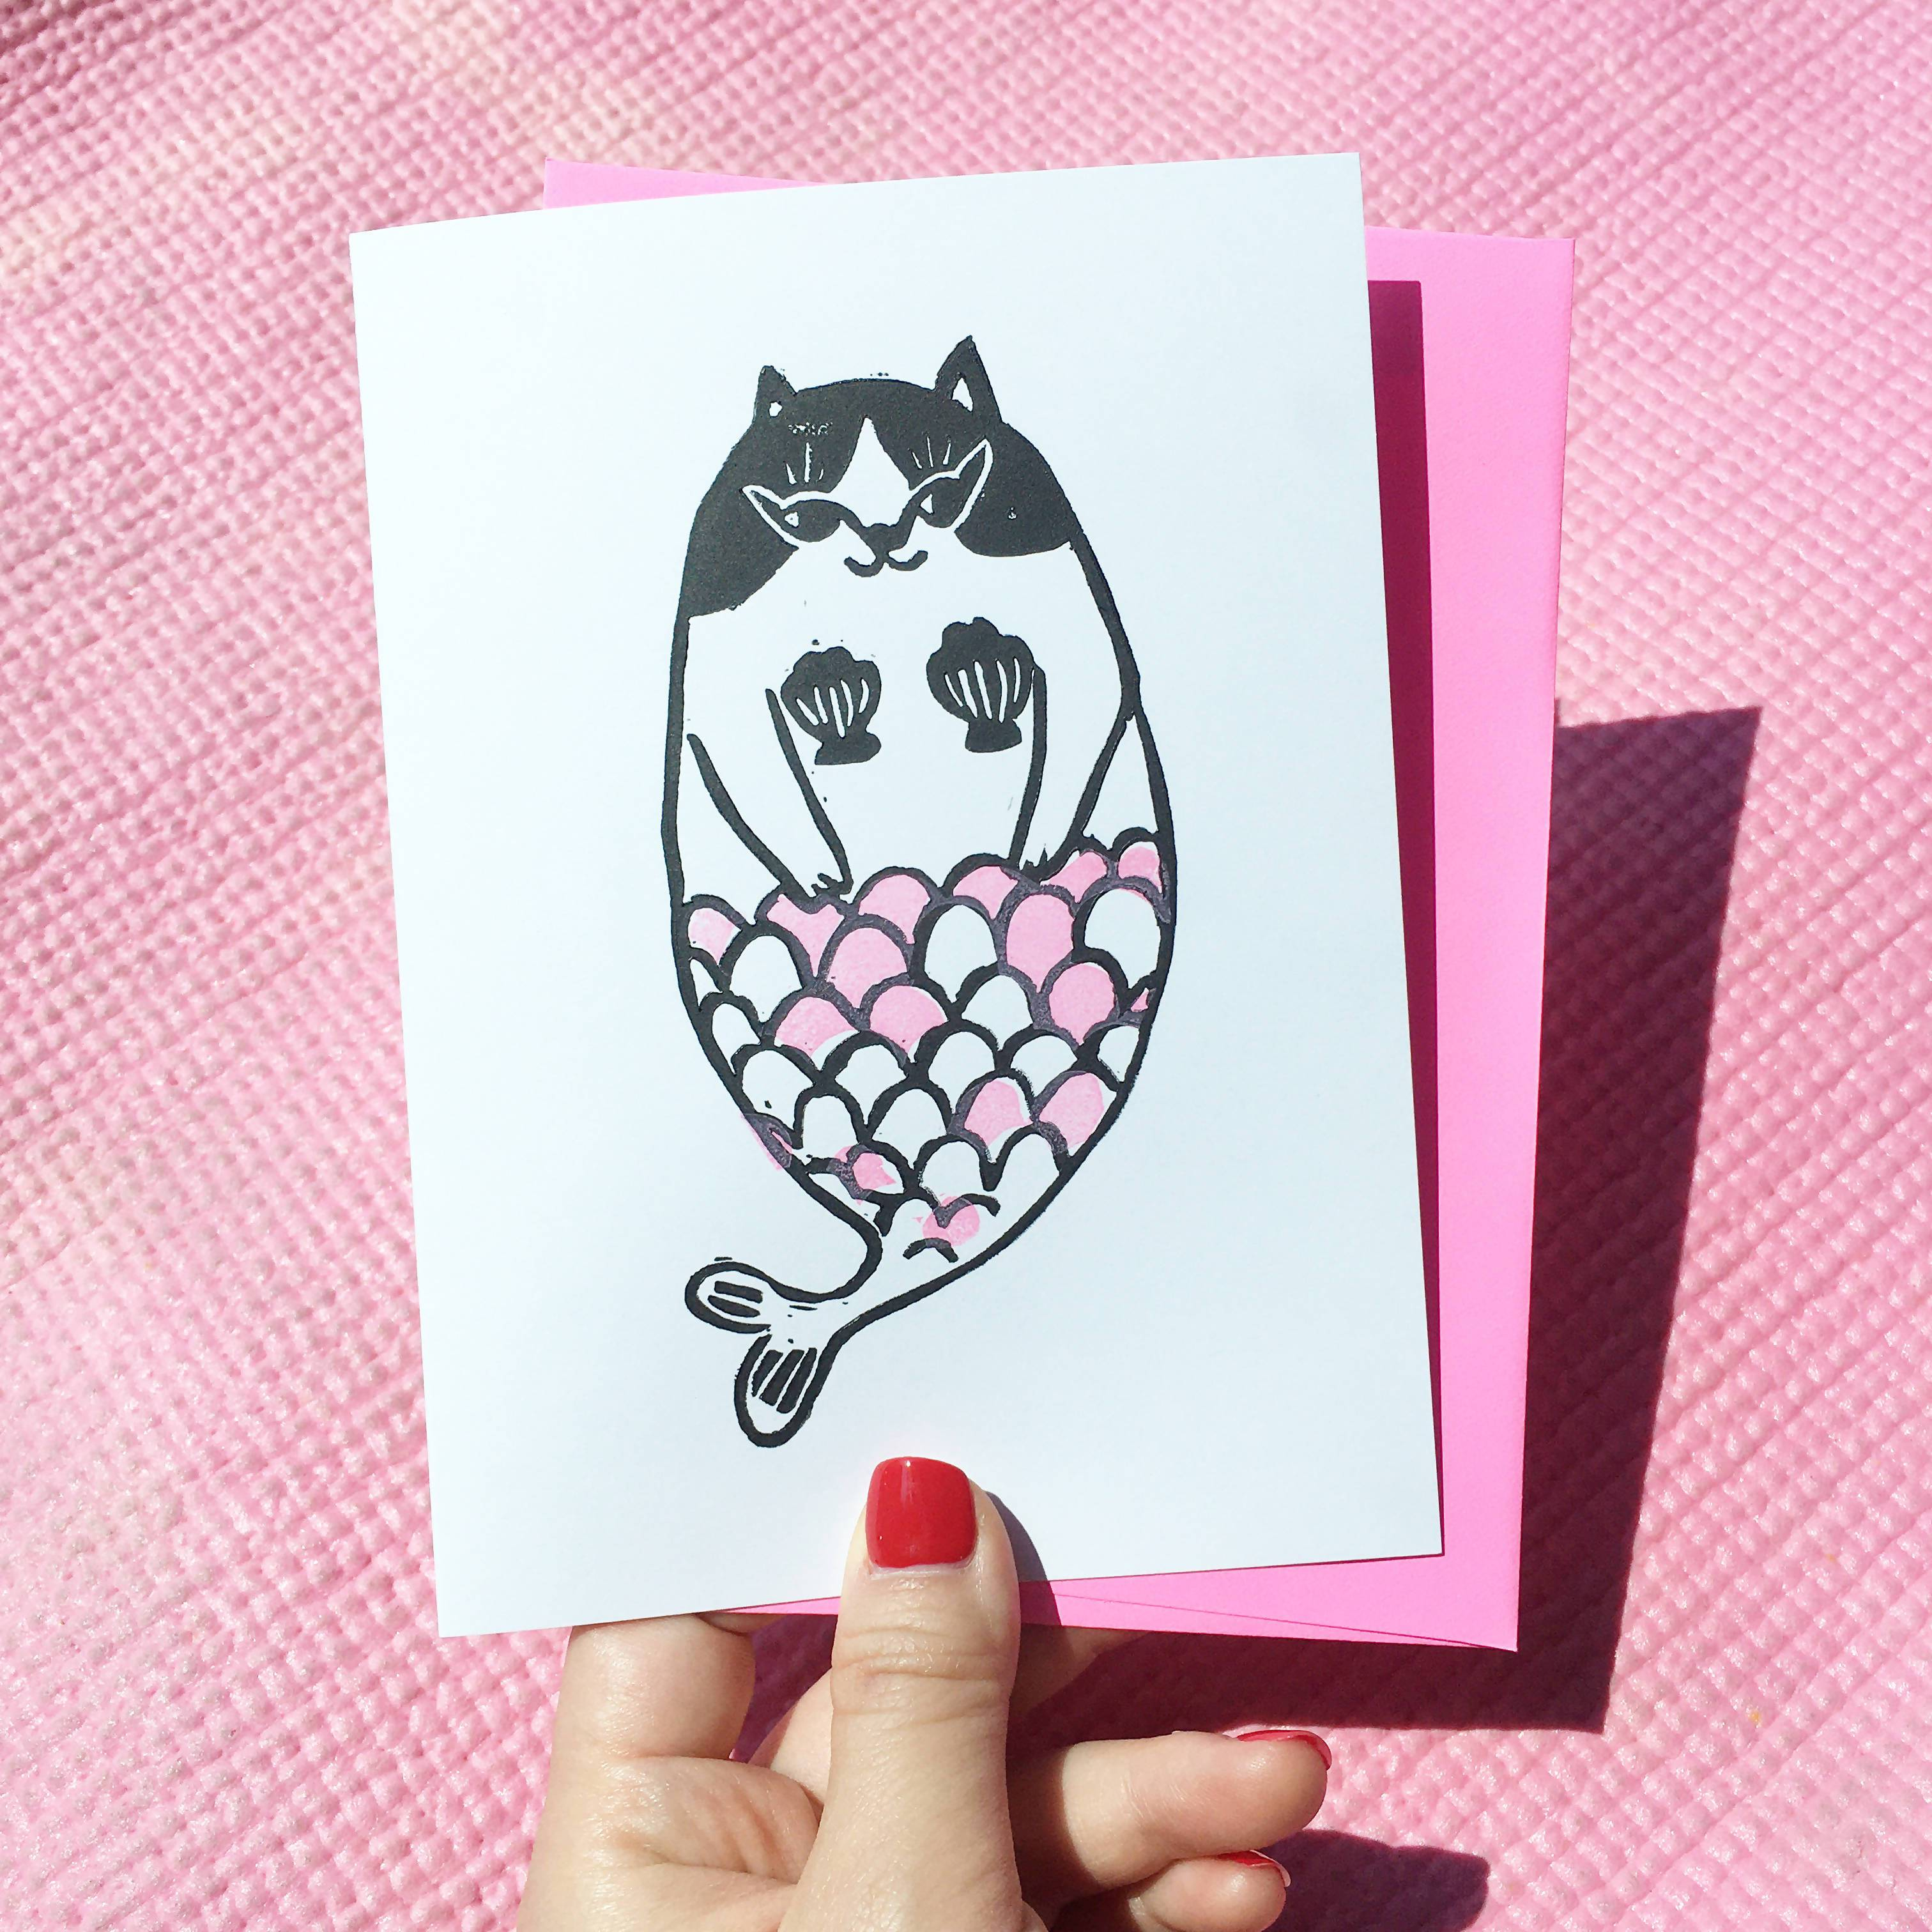 Pink Meowmaid Cat - Hand-Printed Cat Greeting Card - Generic Greeting Cards - Ping Hatta. Studio - Naiise